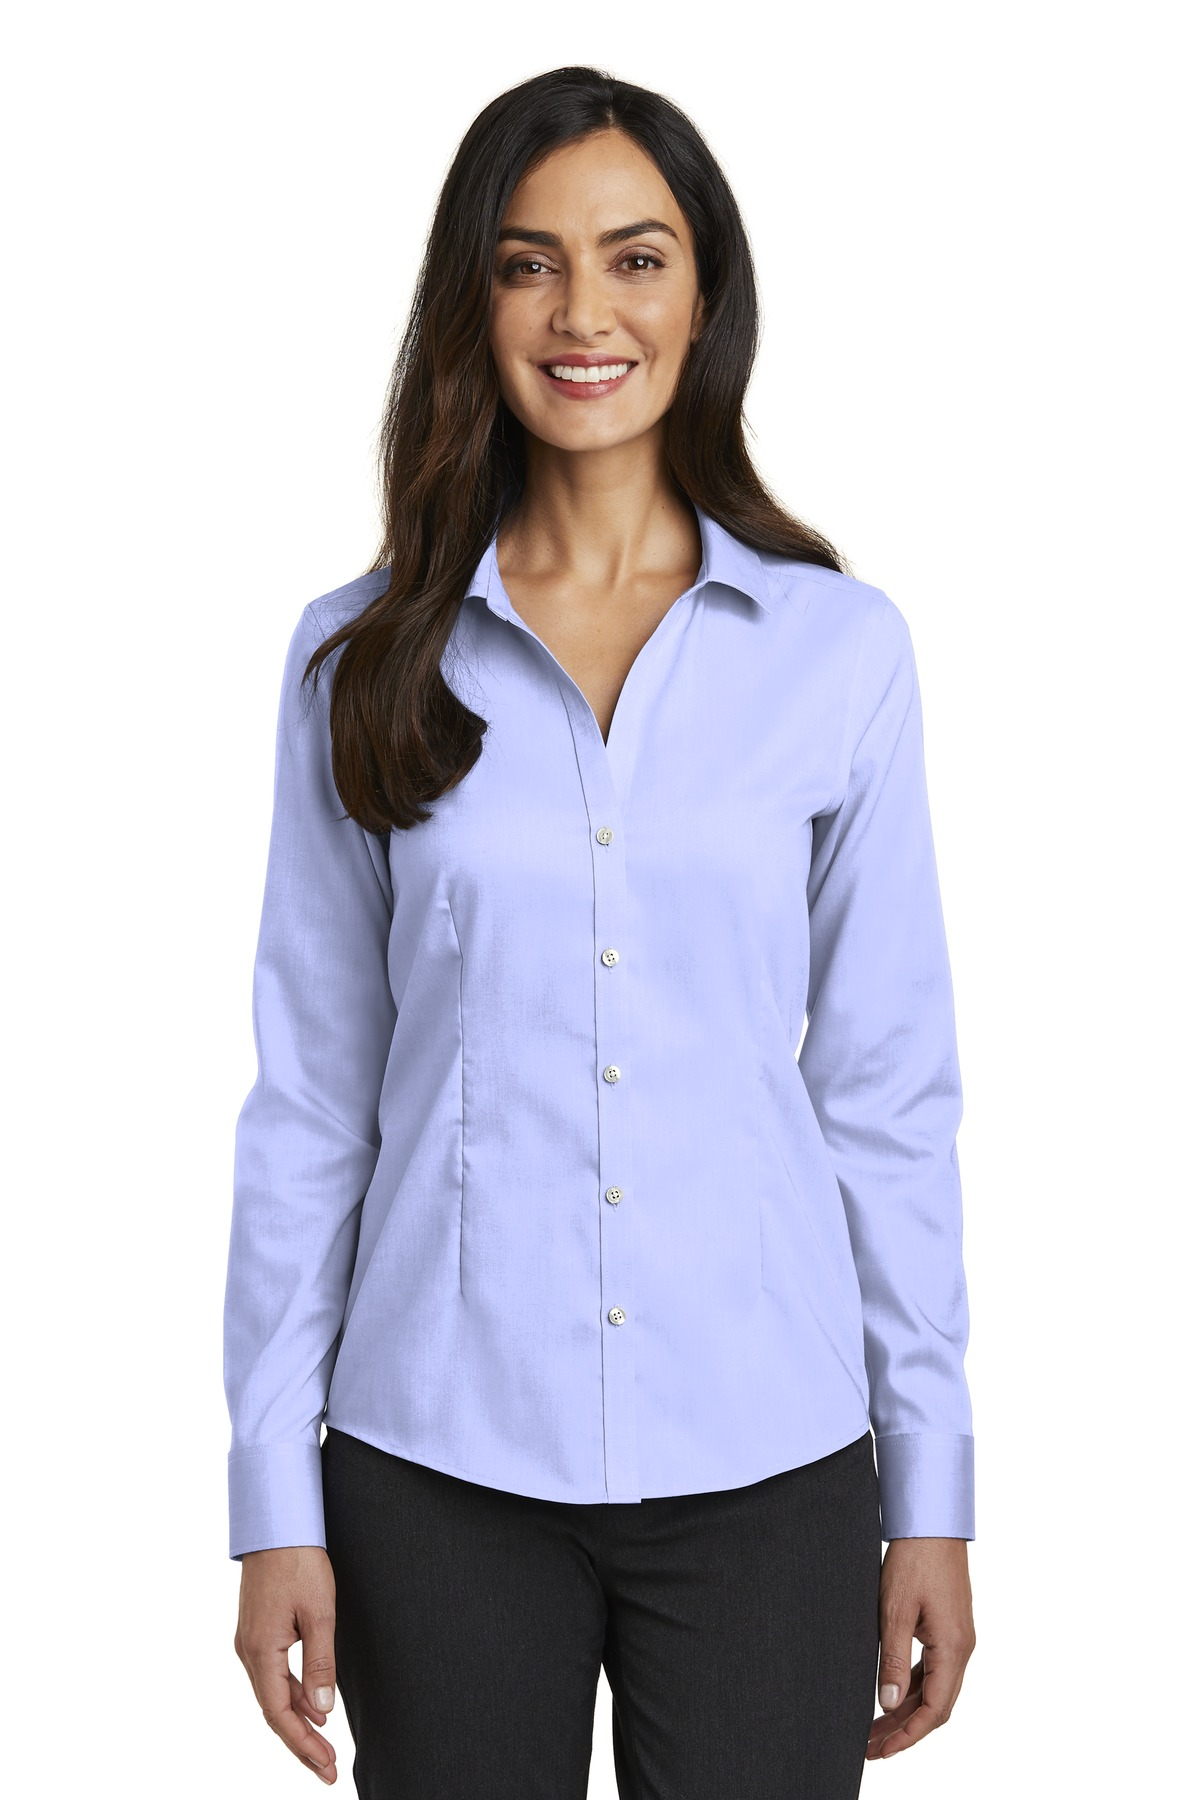 Red House ®   Ladies Pinpoint Oxford Non-Iron Shirt. RH250 - Blue